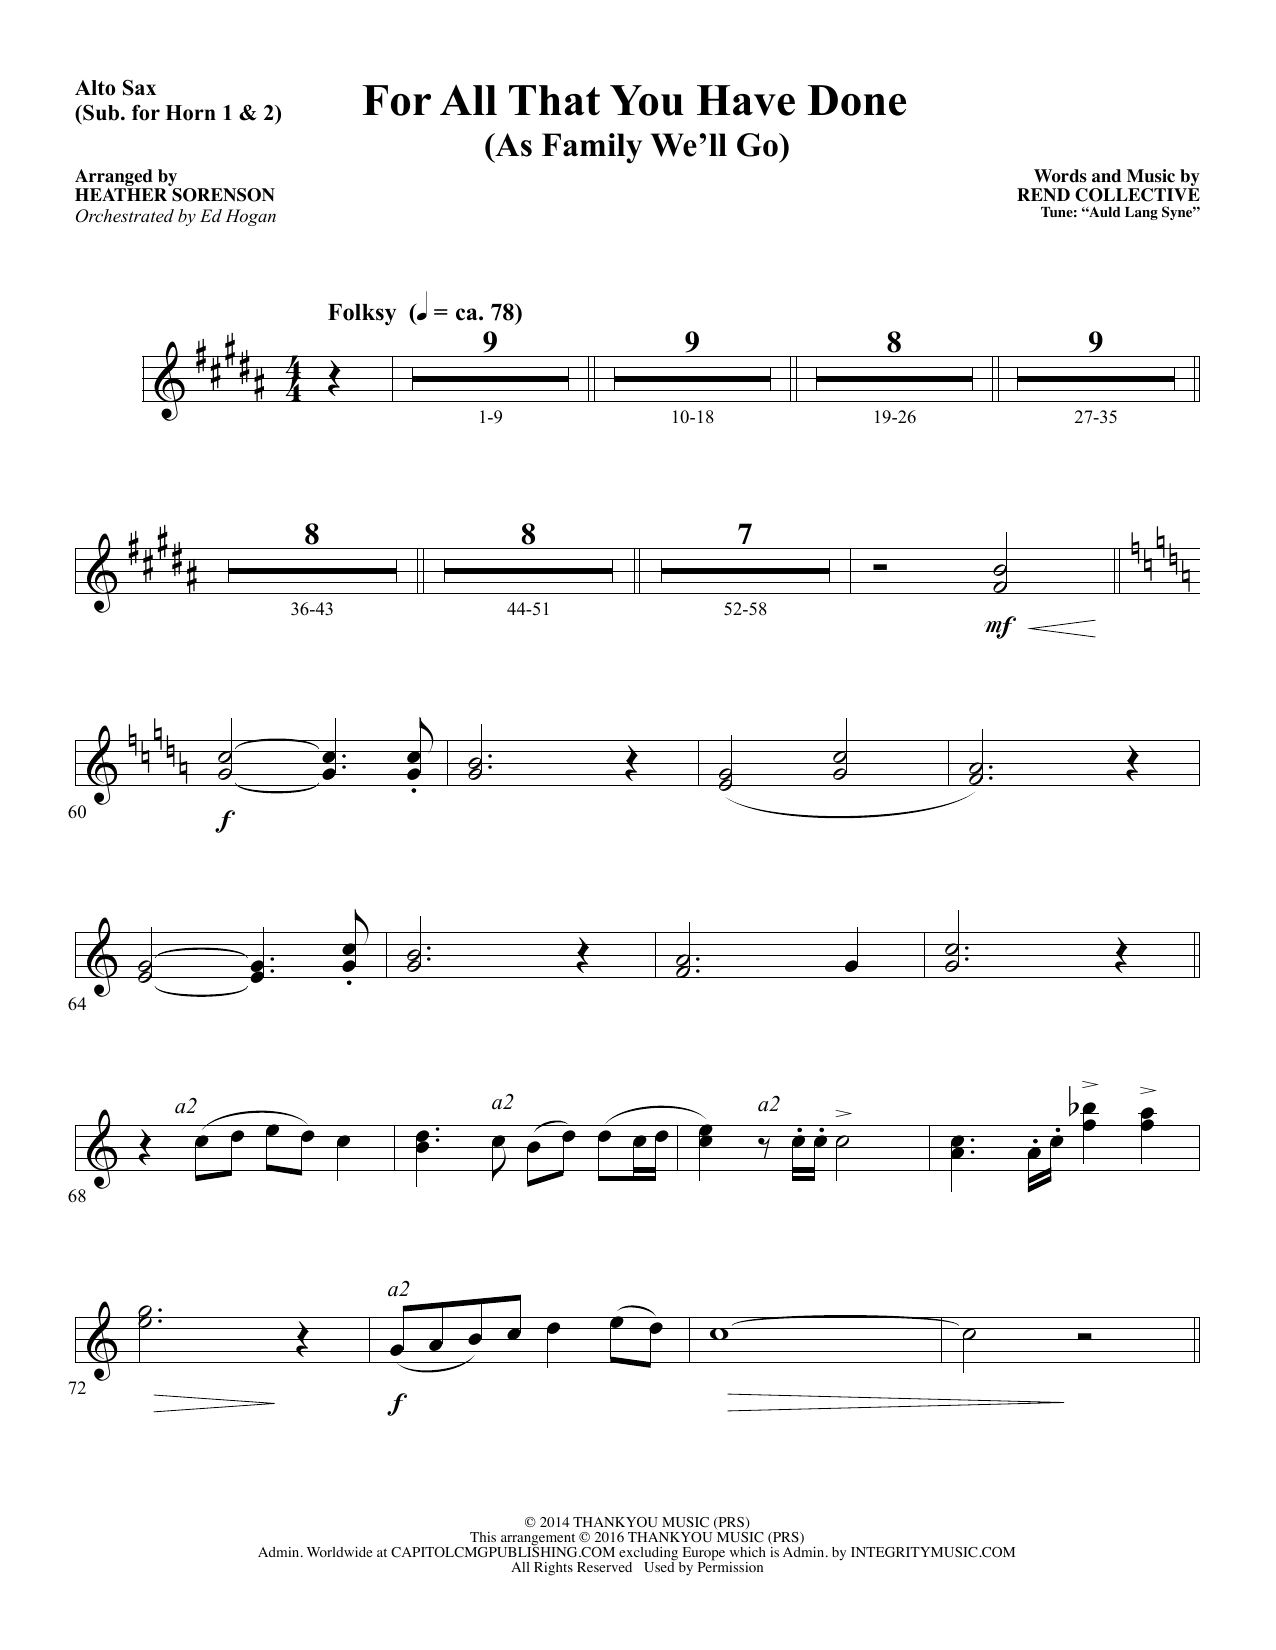 For All That You Have Done - Alto Sax 1-2 (sub. Horn 1-2) Sheet Music